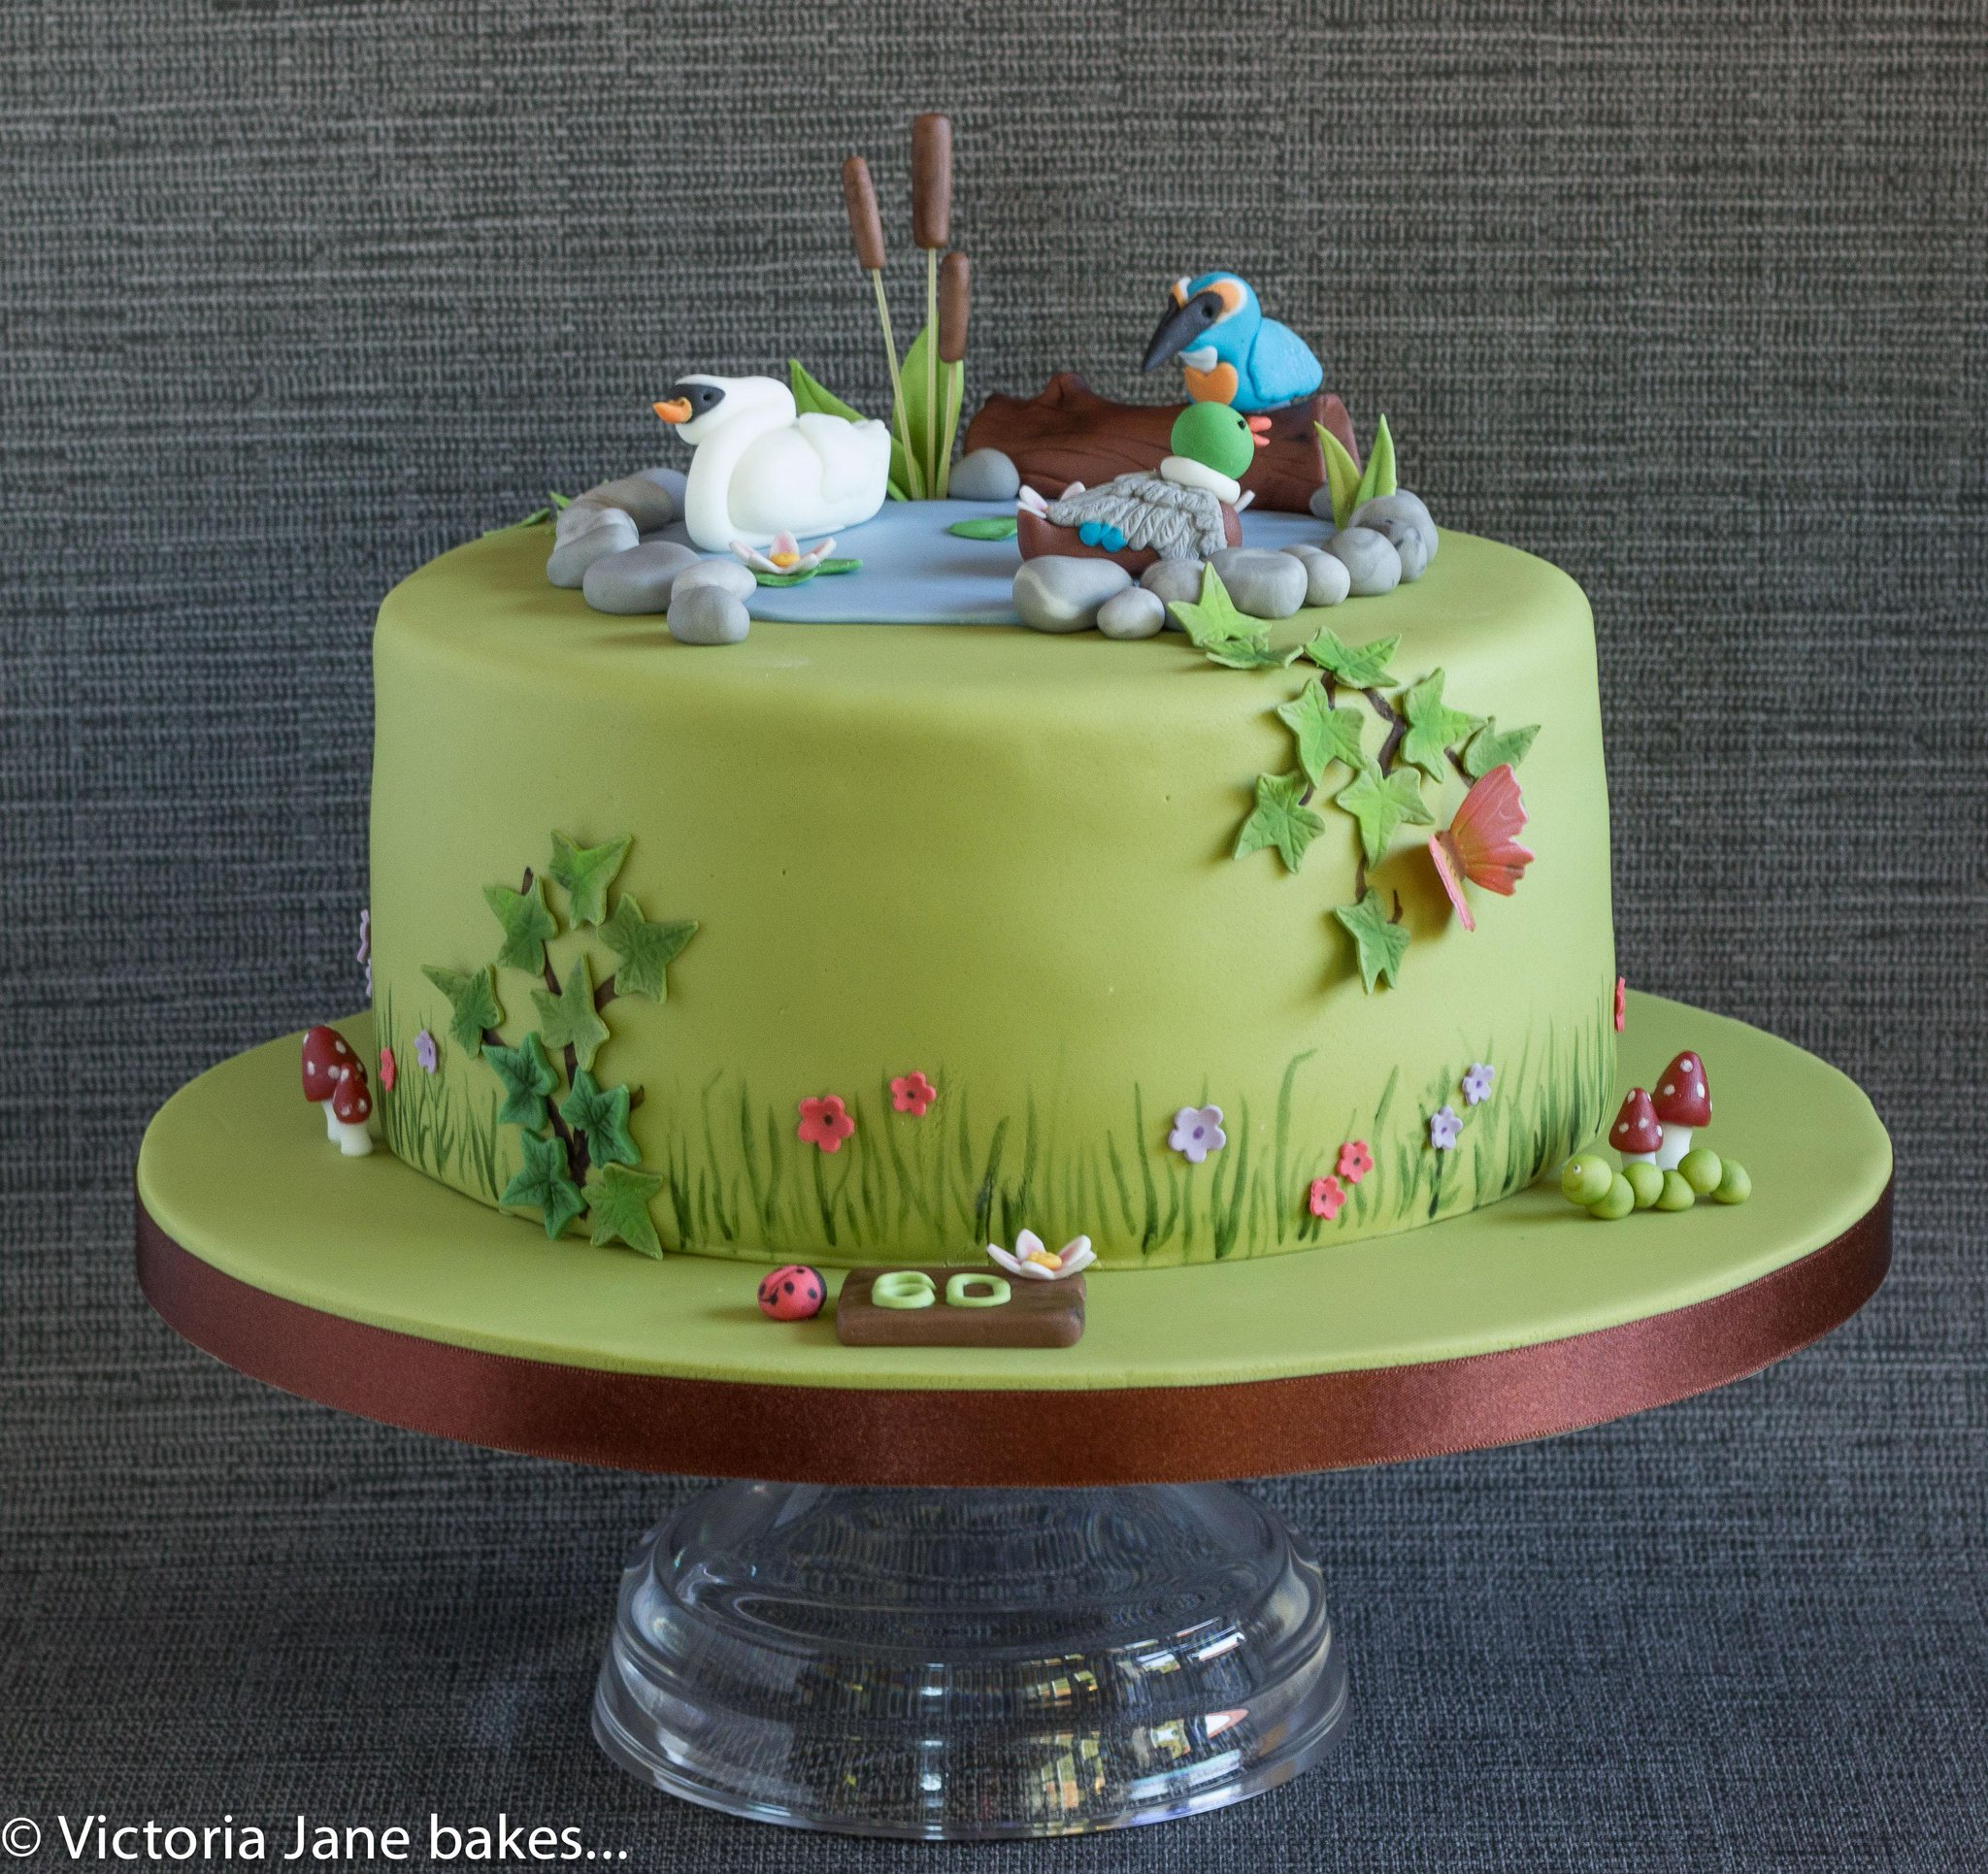 Victoria Jane Bakes on Twitter 60th birthday cake for a nature